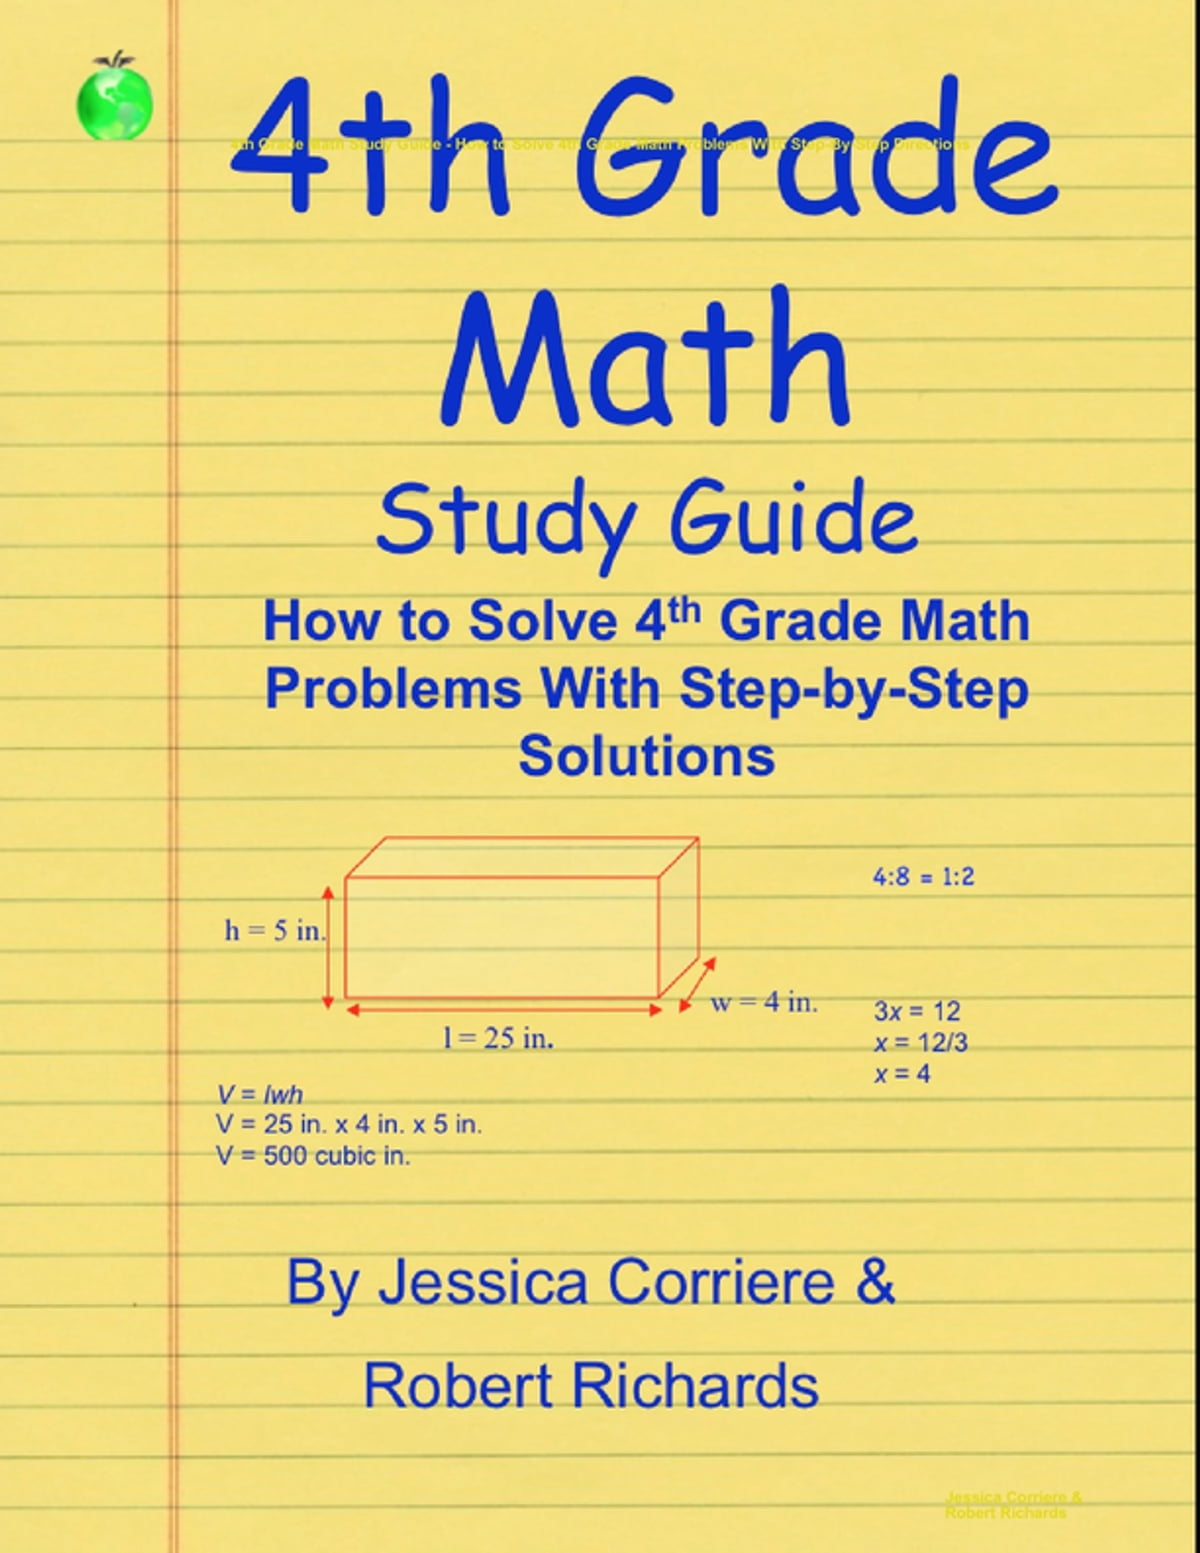 Bestseller: Algebra 1 Eoc Word Problems With Solutions